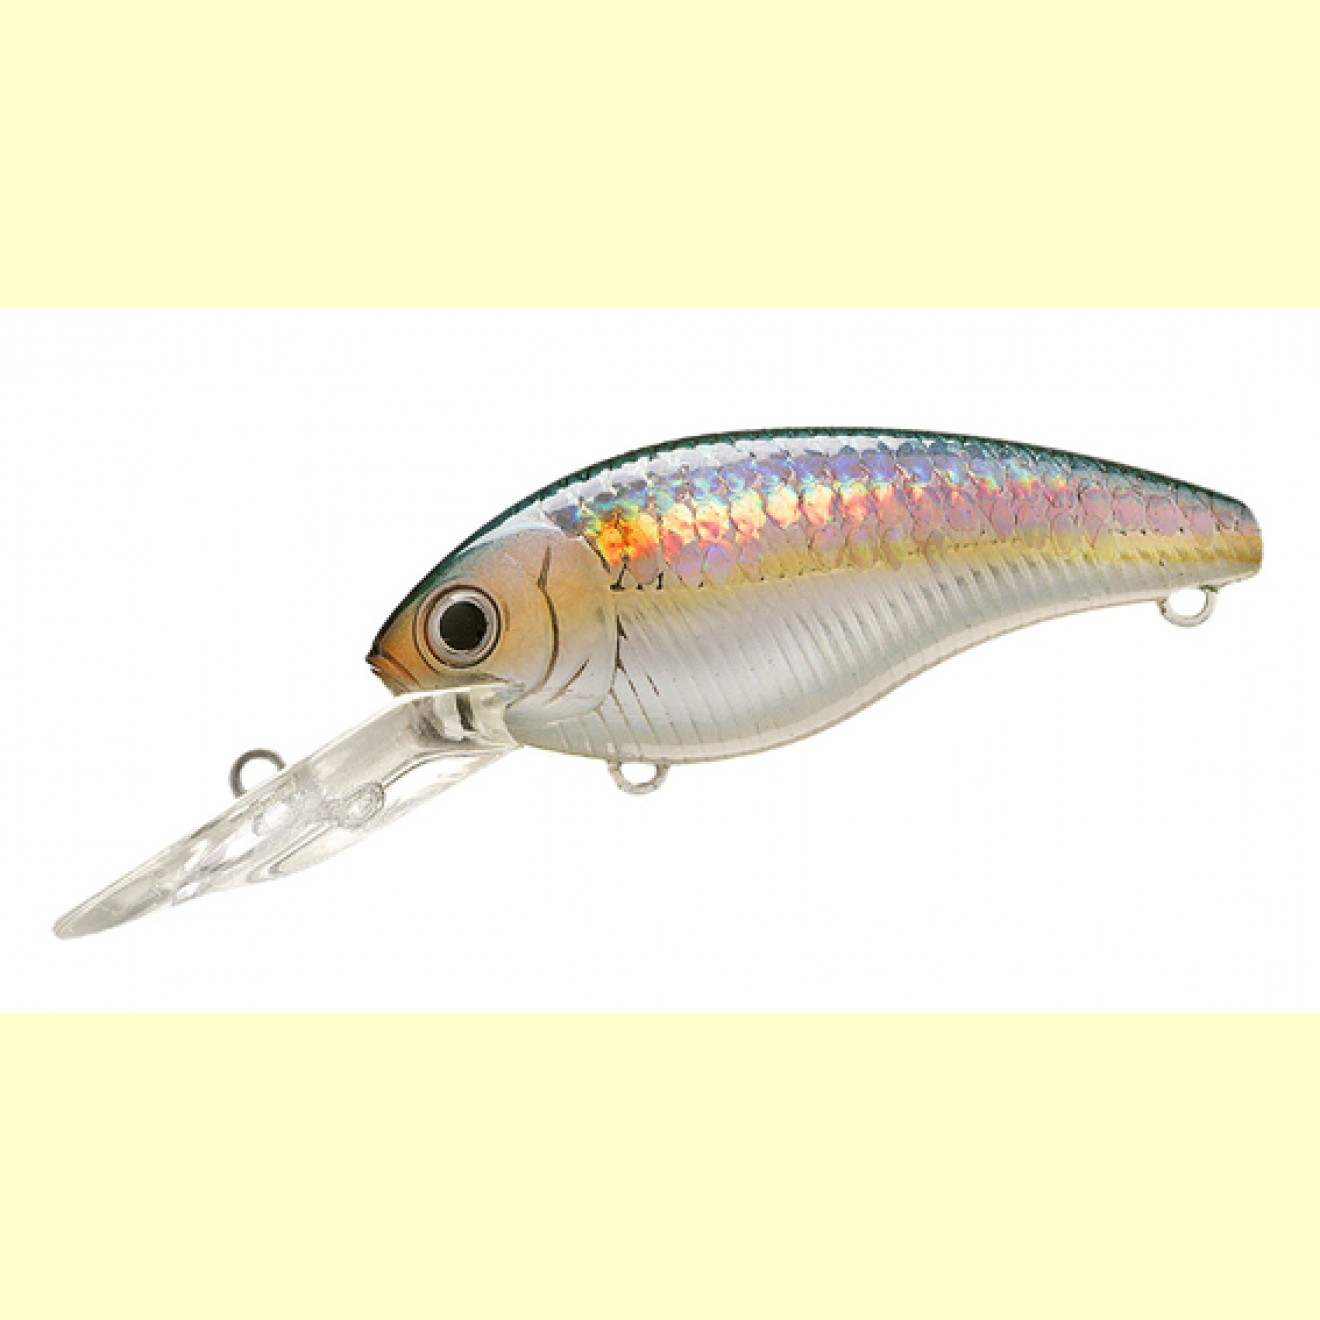 CB 200 Moonsault - MS American Shad - LUCKY CRAFT